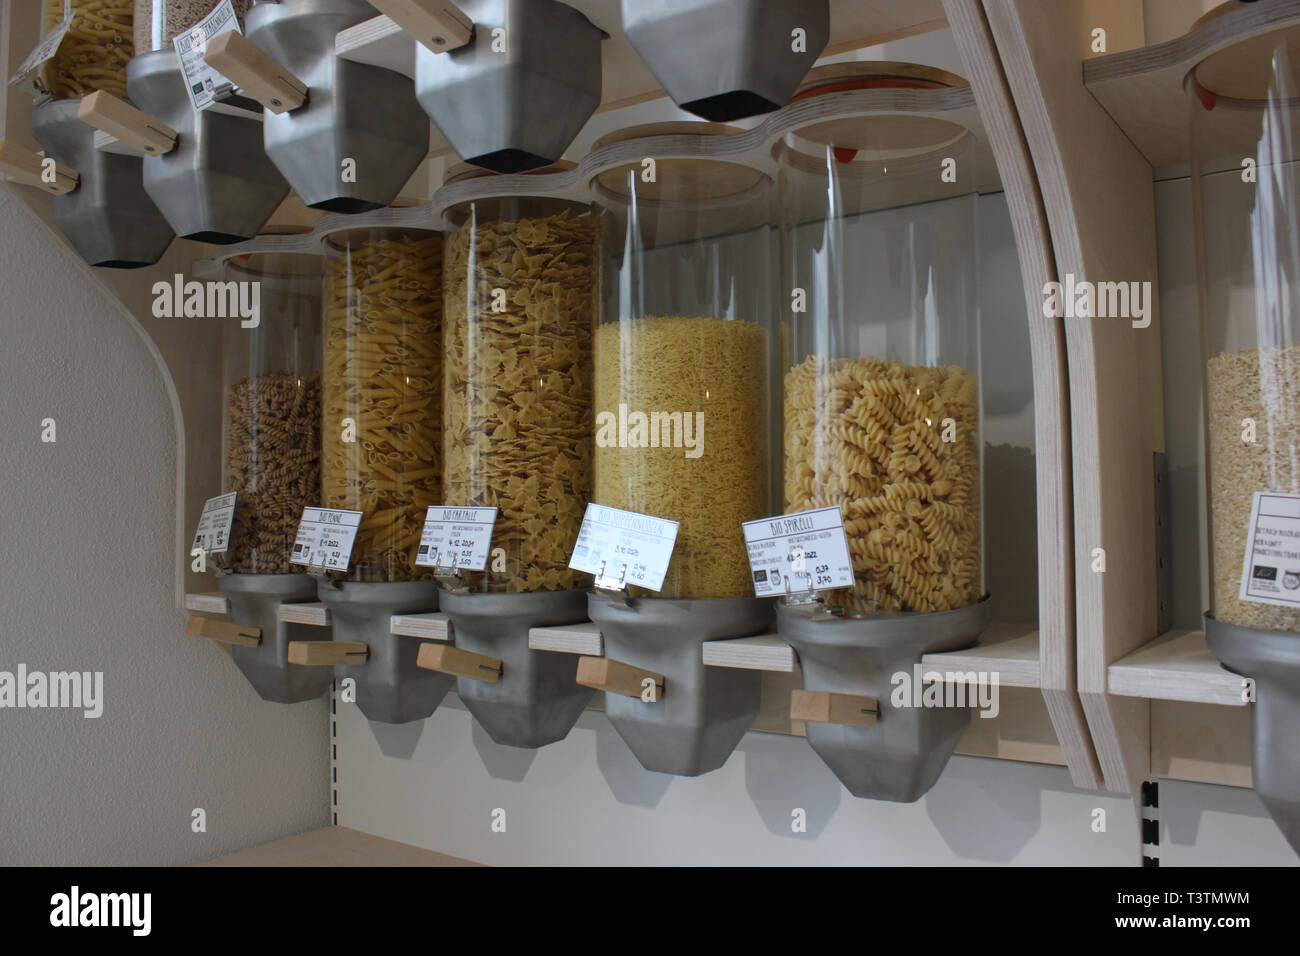 Pasta sold without packaging, presented in zero waste manner in glass containers. - Stock Image